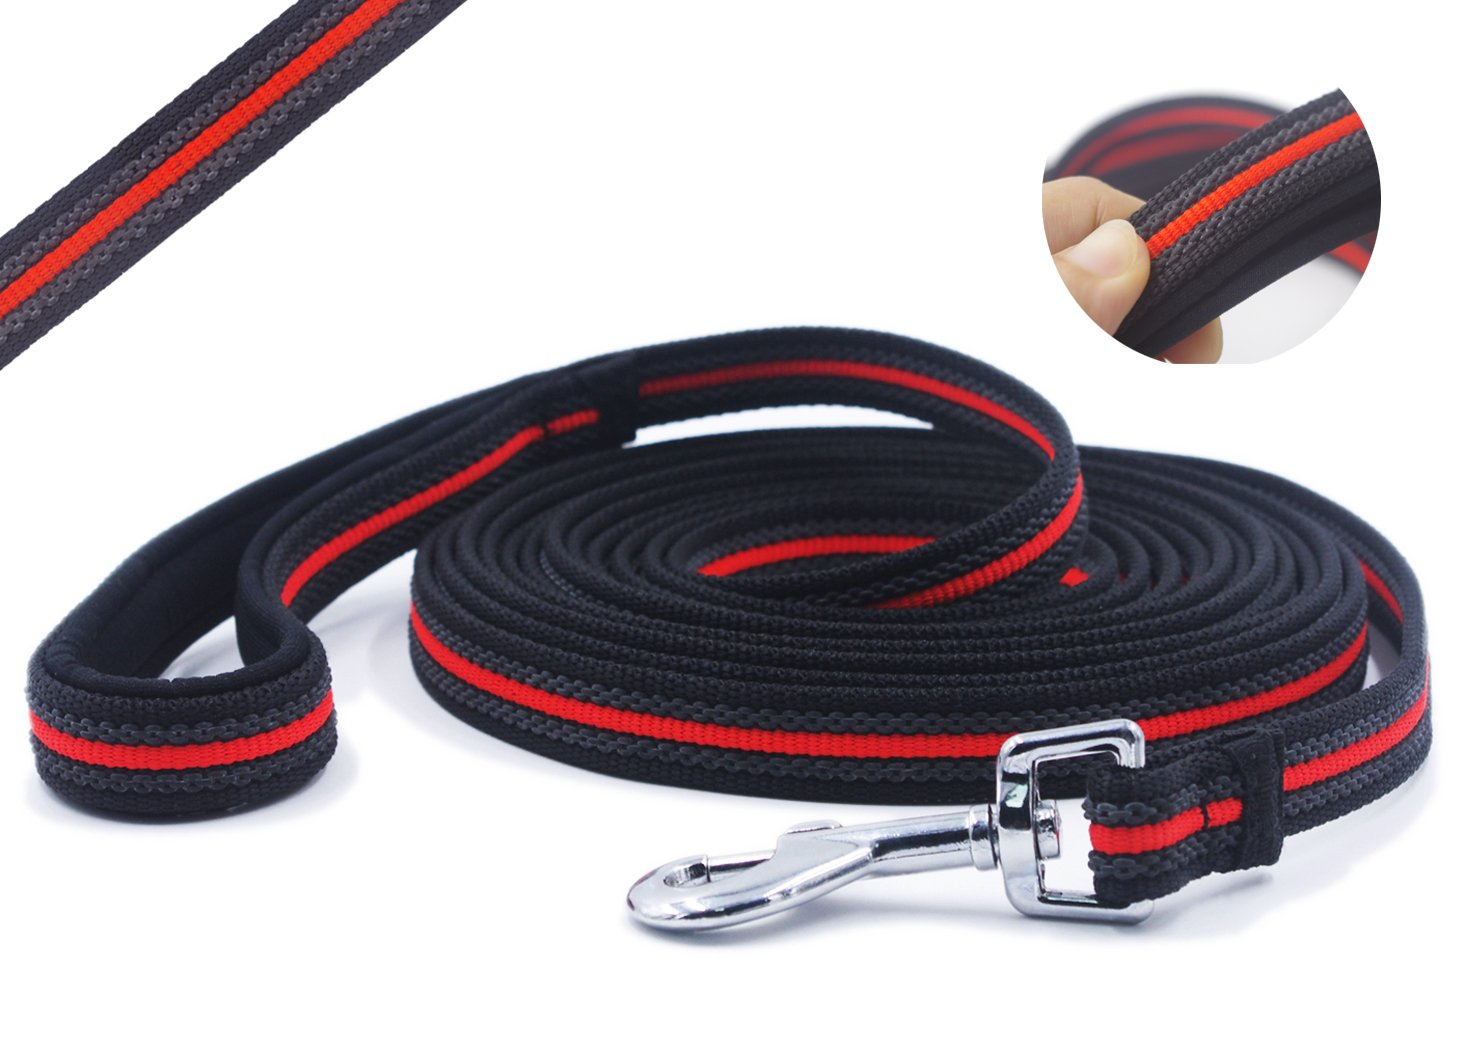 15ft YOOGAO Pet Long Dog Training Leash, Long Leash with Special Non-Slip Design and Padded Handle, 15 ft, for Any Szie of Dogs